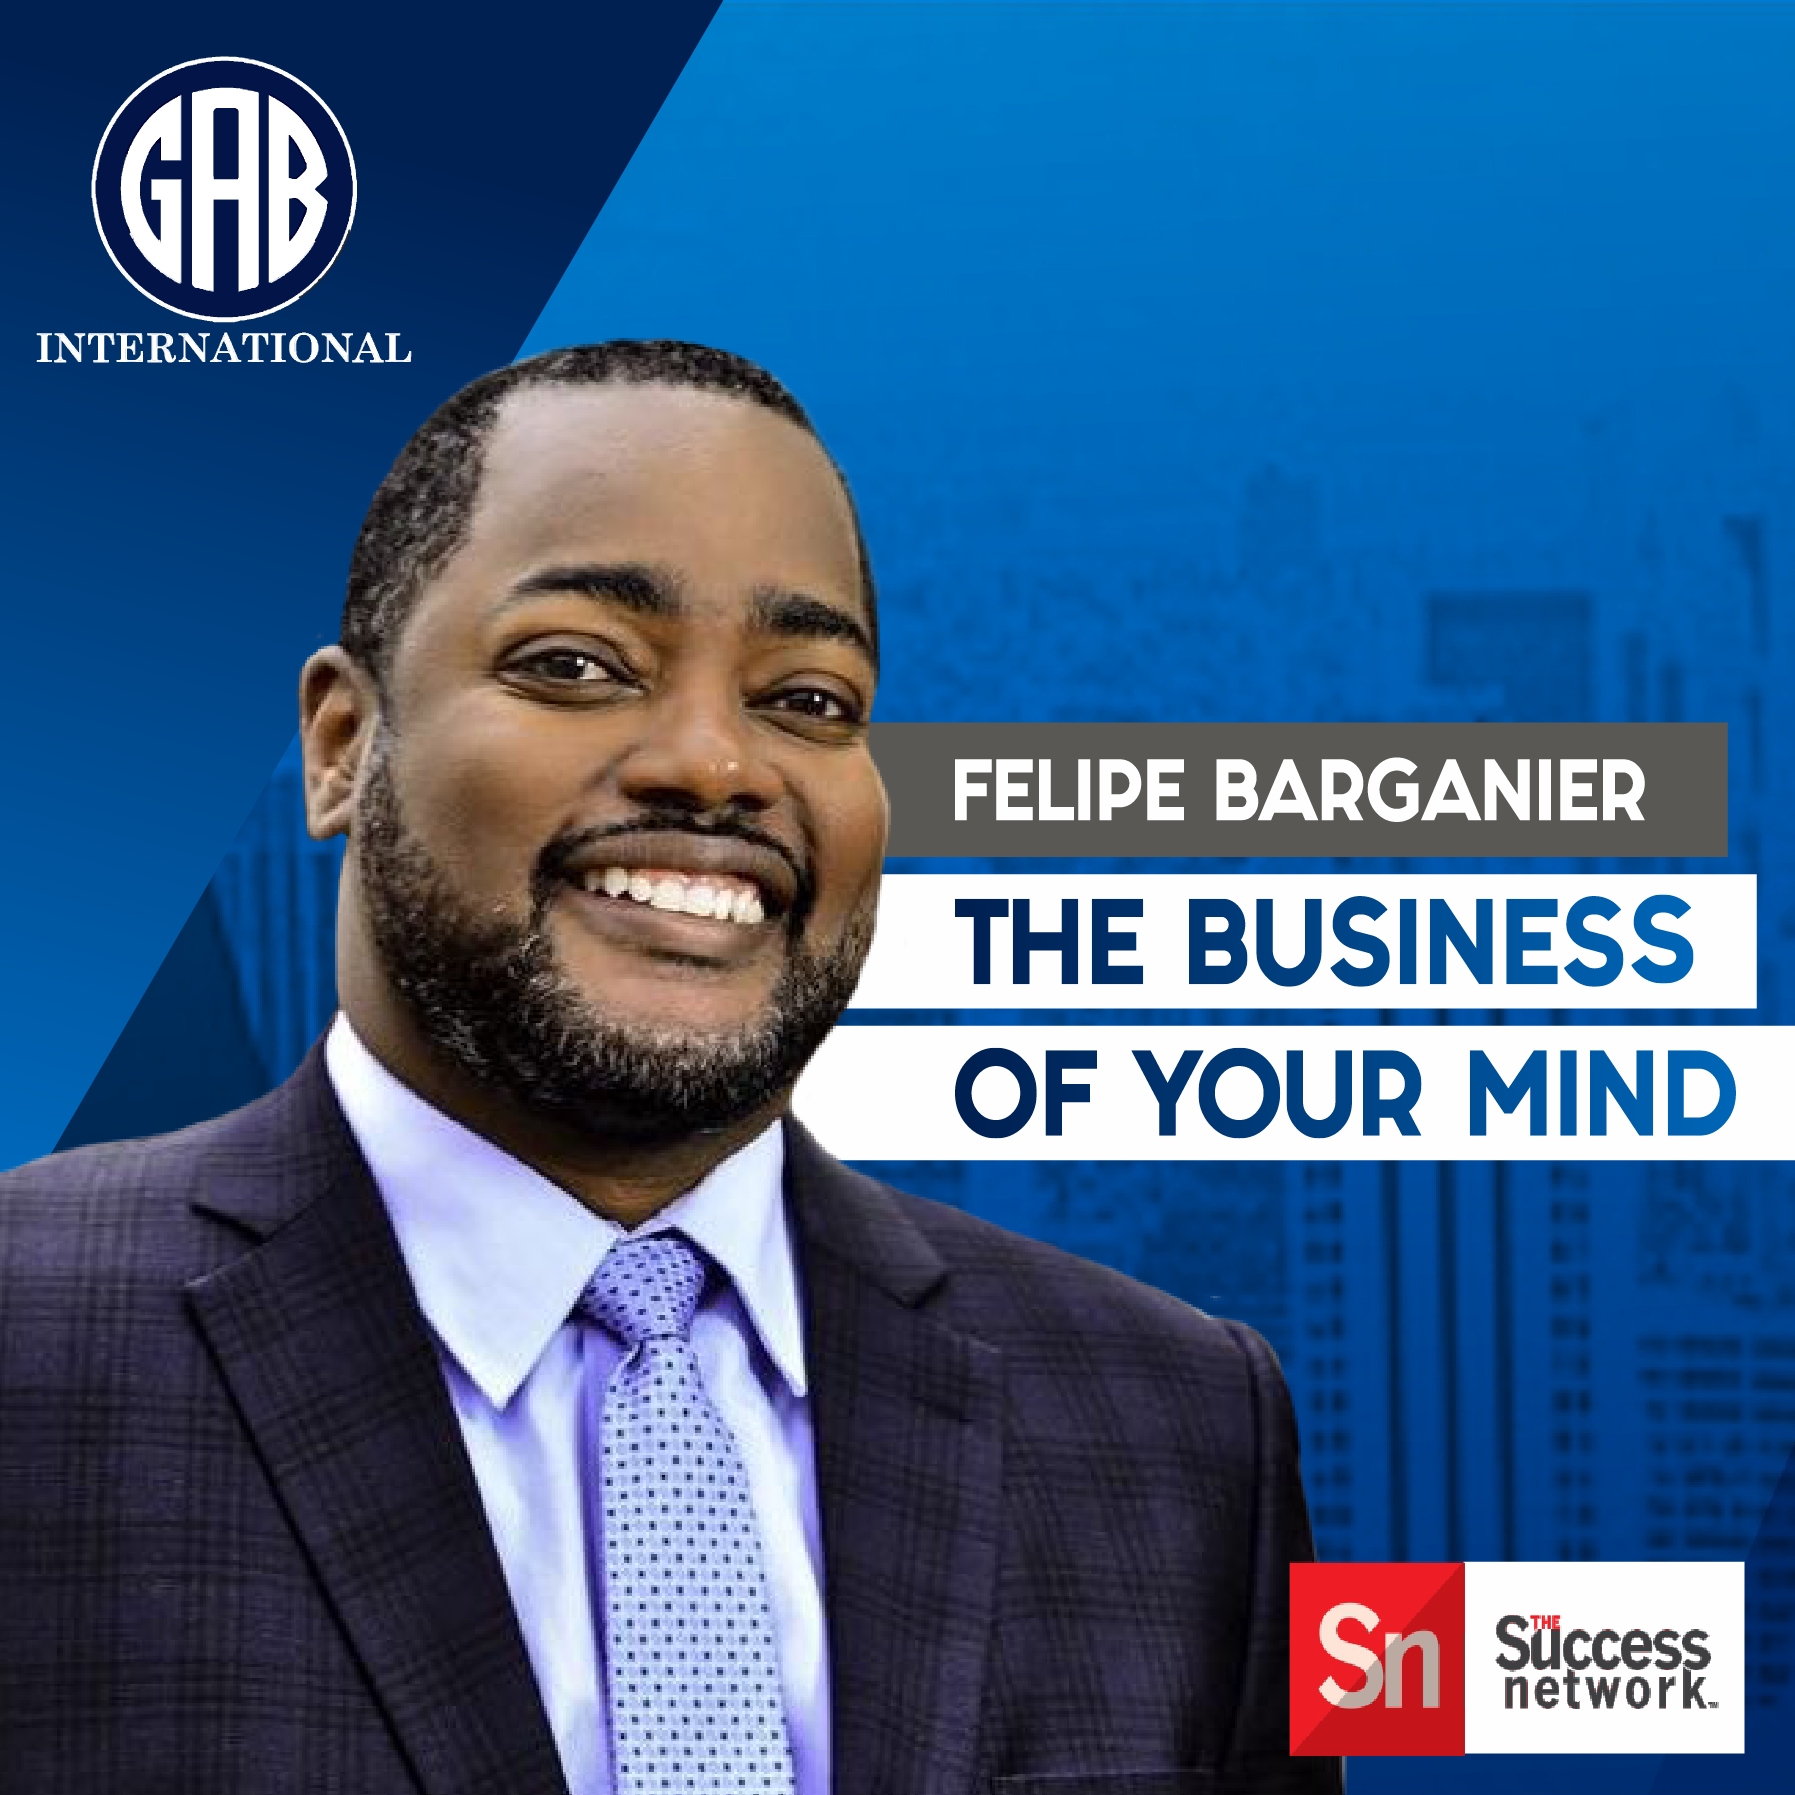 The Business of Your Mind